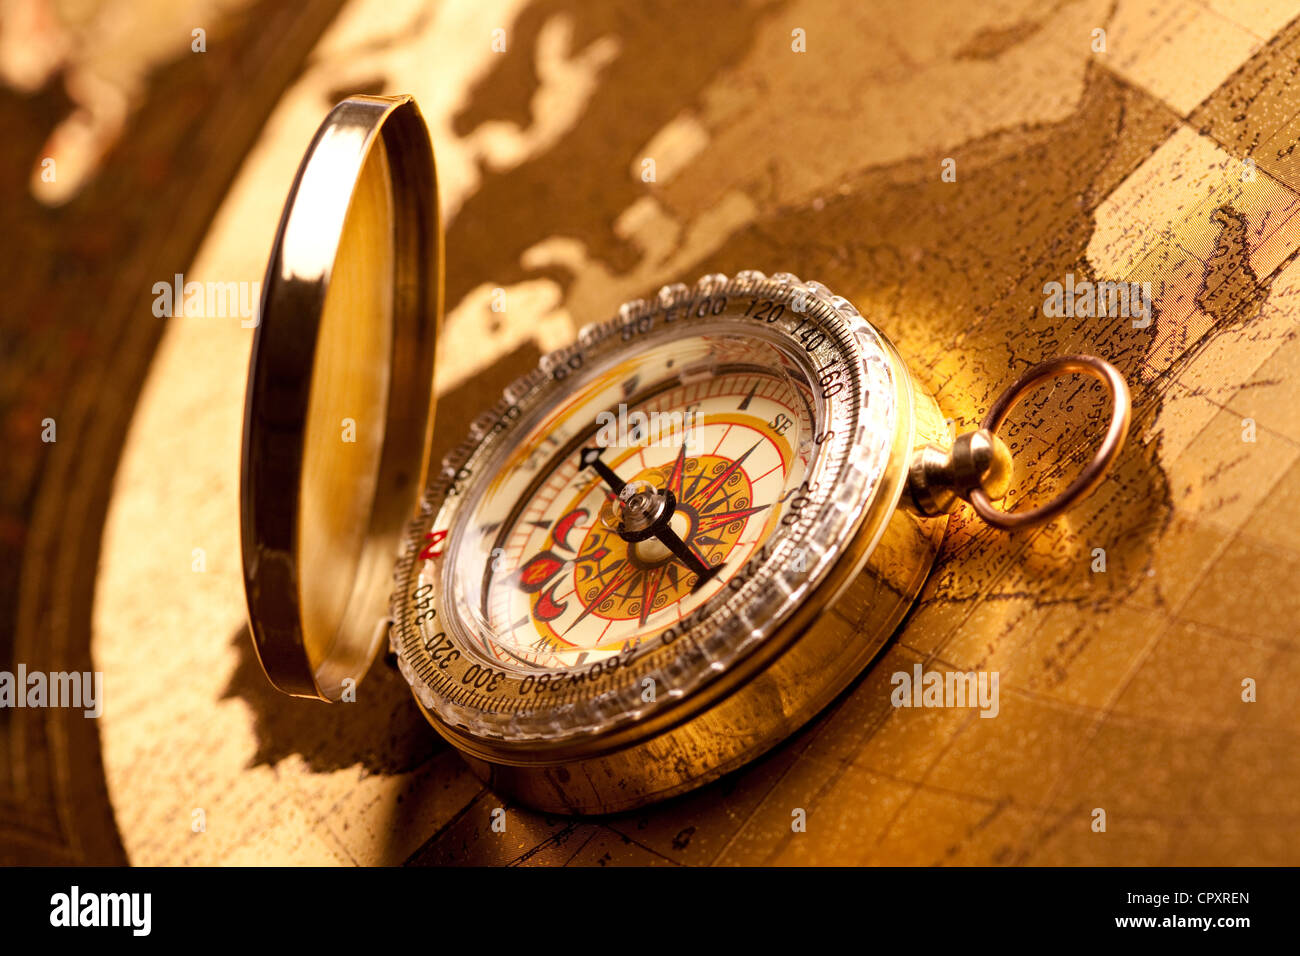 Vintage Navigation equipment, compass and other tools - Stock Image